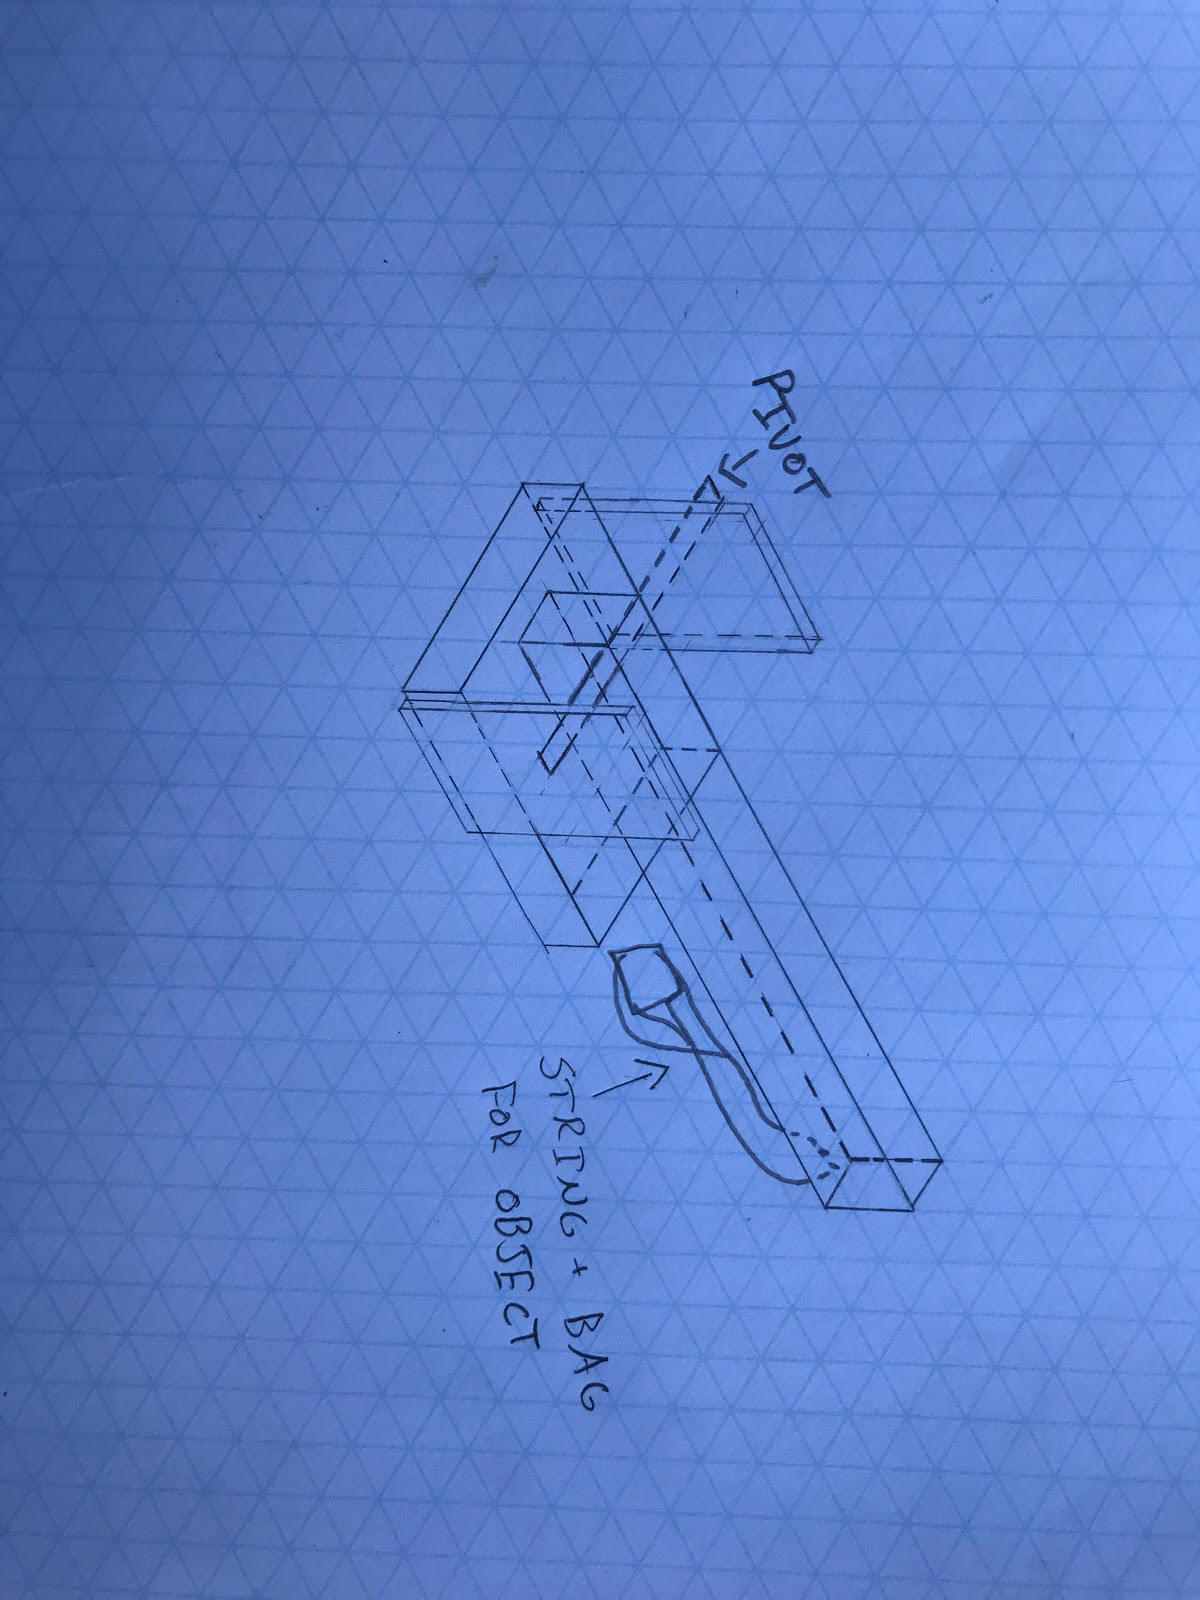 Project 2 Diagram Picture Trebuchet The Toughest Part Of Is String And Bag Perfecting This Will Result In A Very Useful Accurate